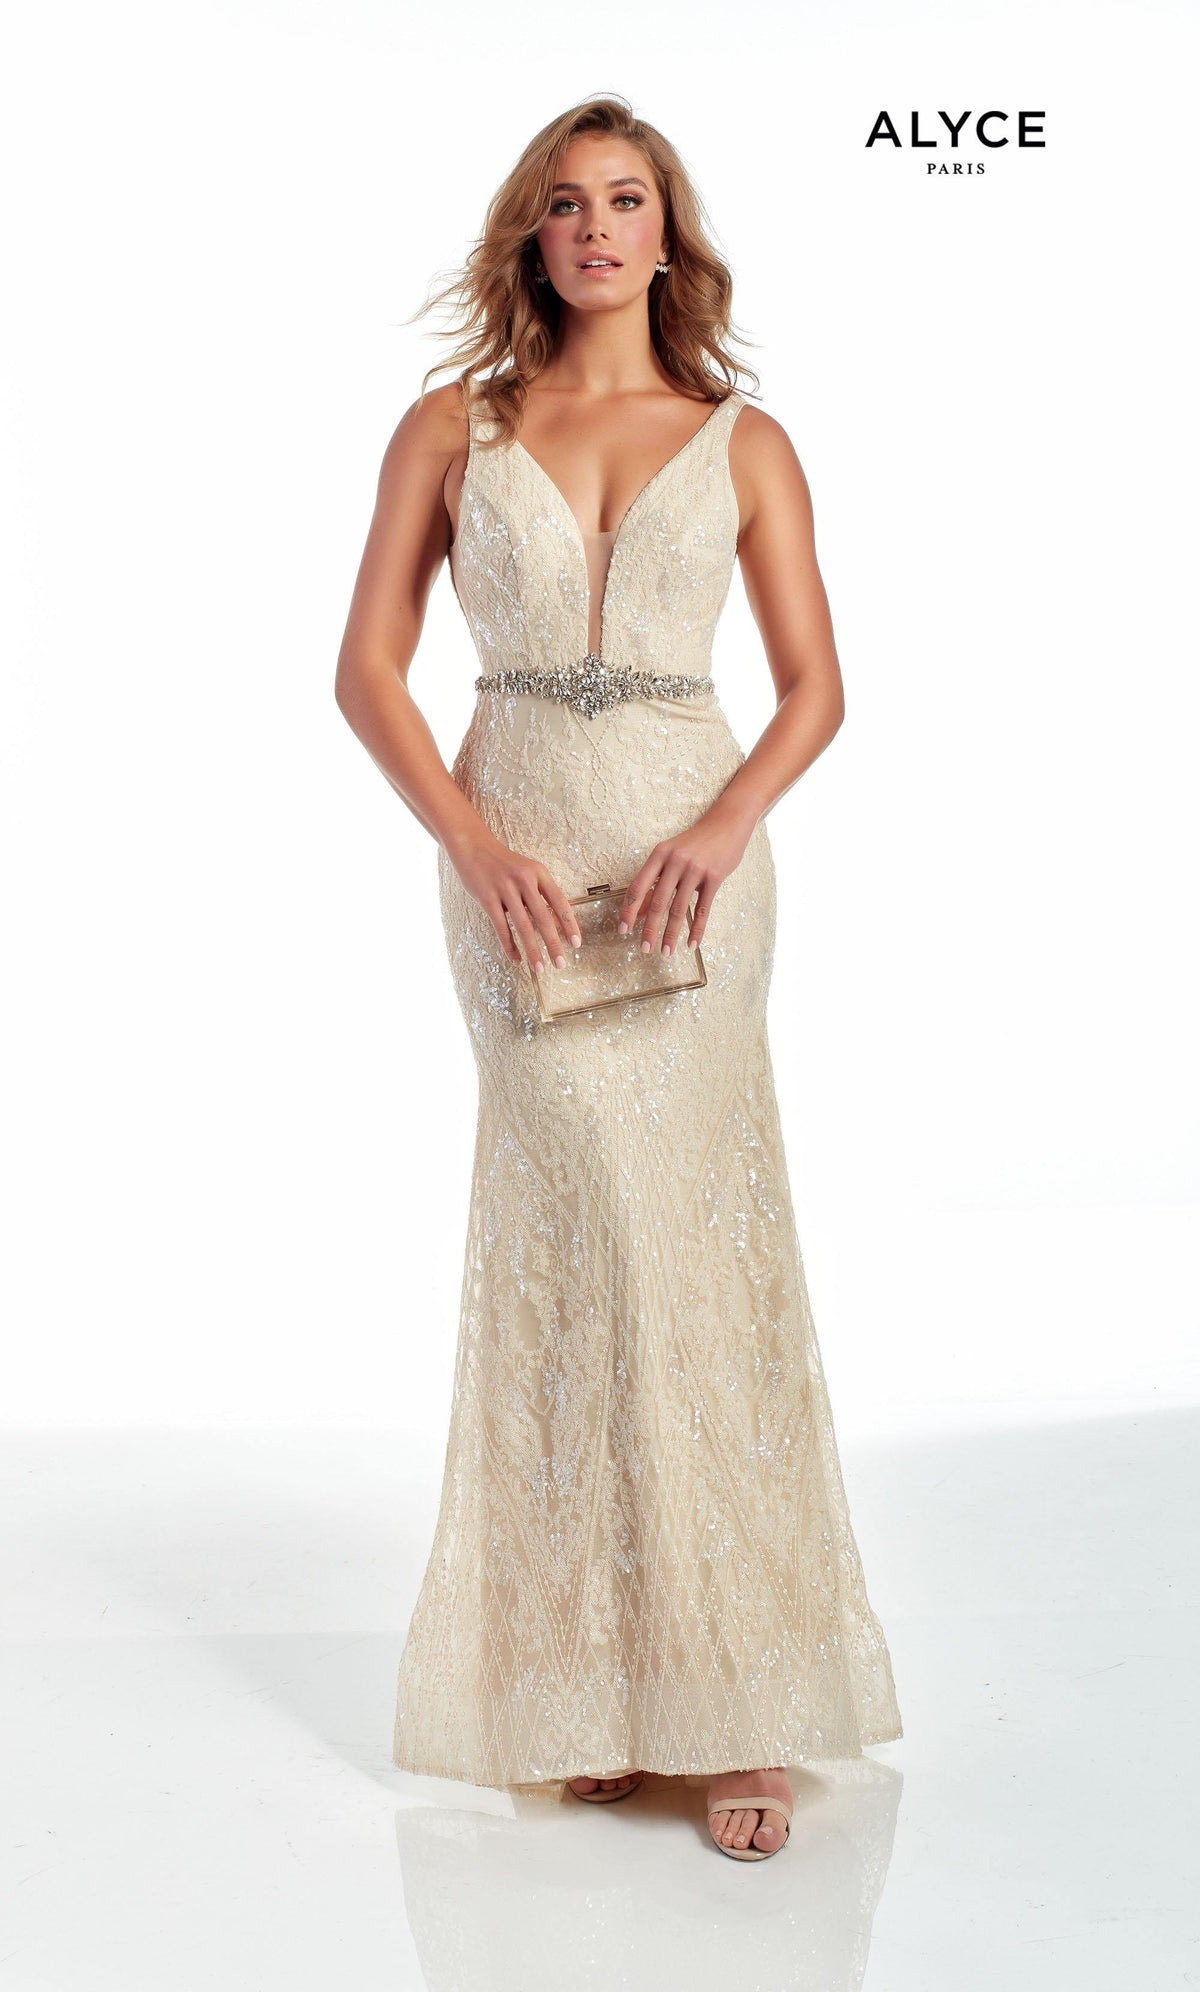 Fully sequin embellished Creme colored evening gown with a plunging neckline and a jewel accents at the natural waist